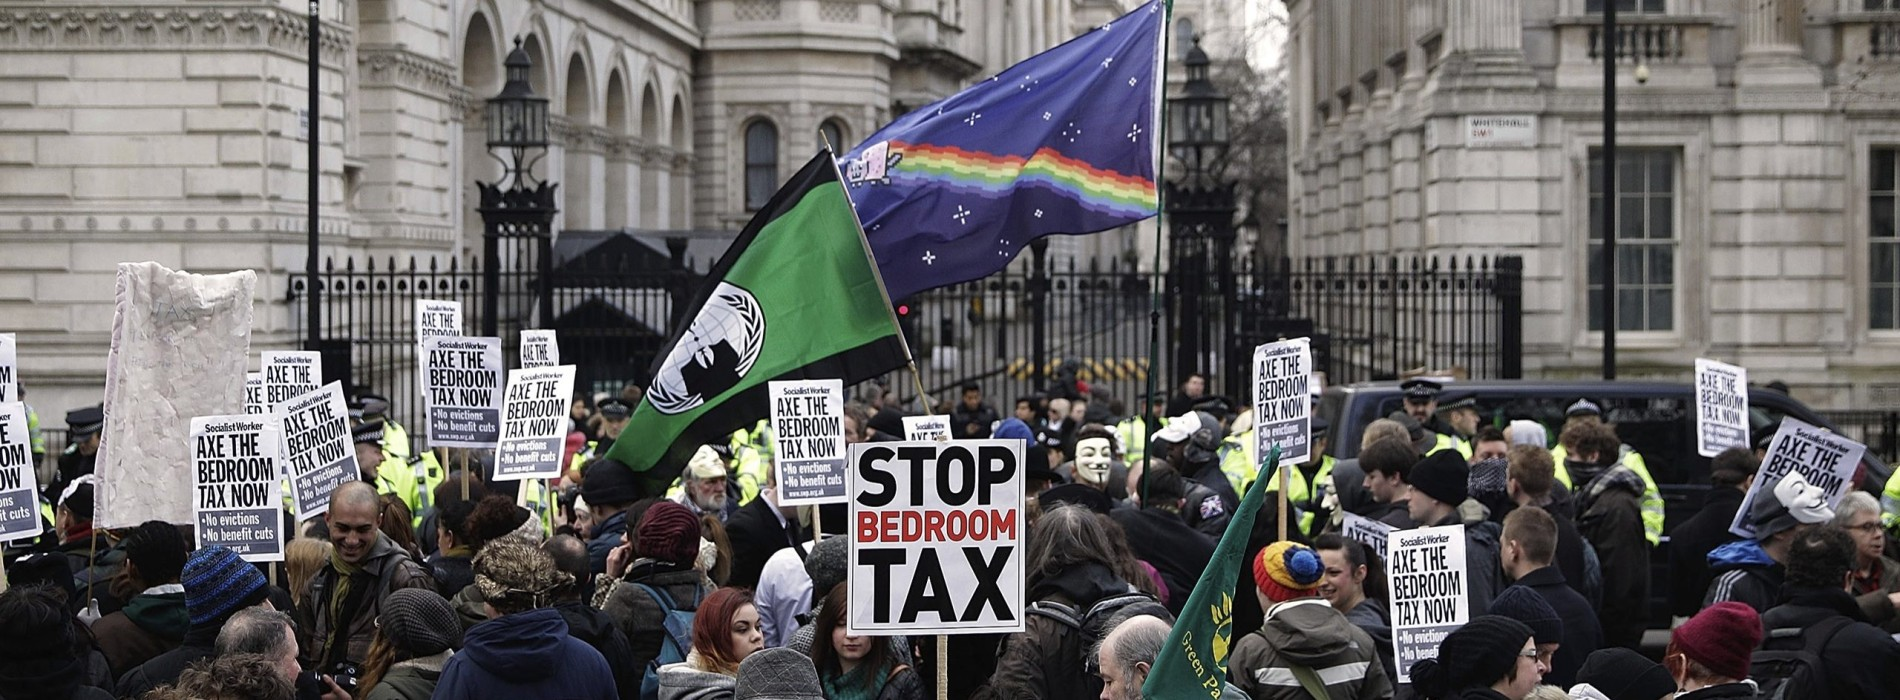 'Bedroom Tax' letting disabled people go hungry